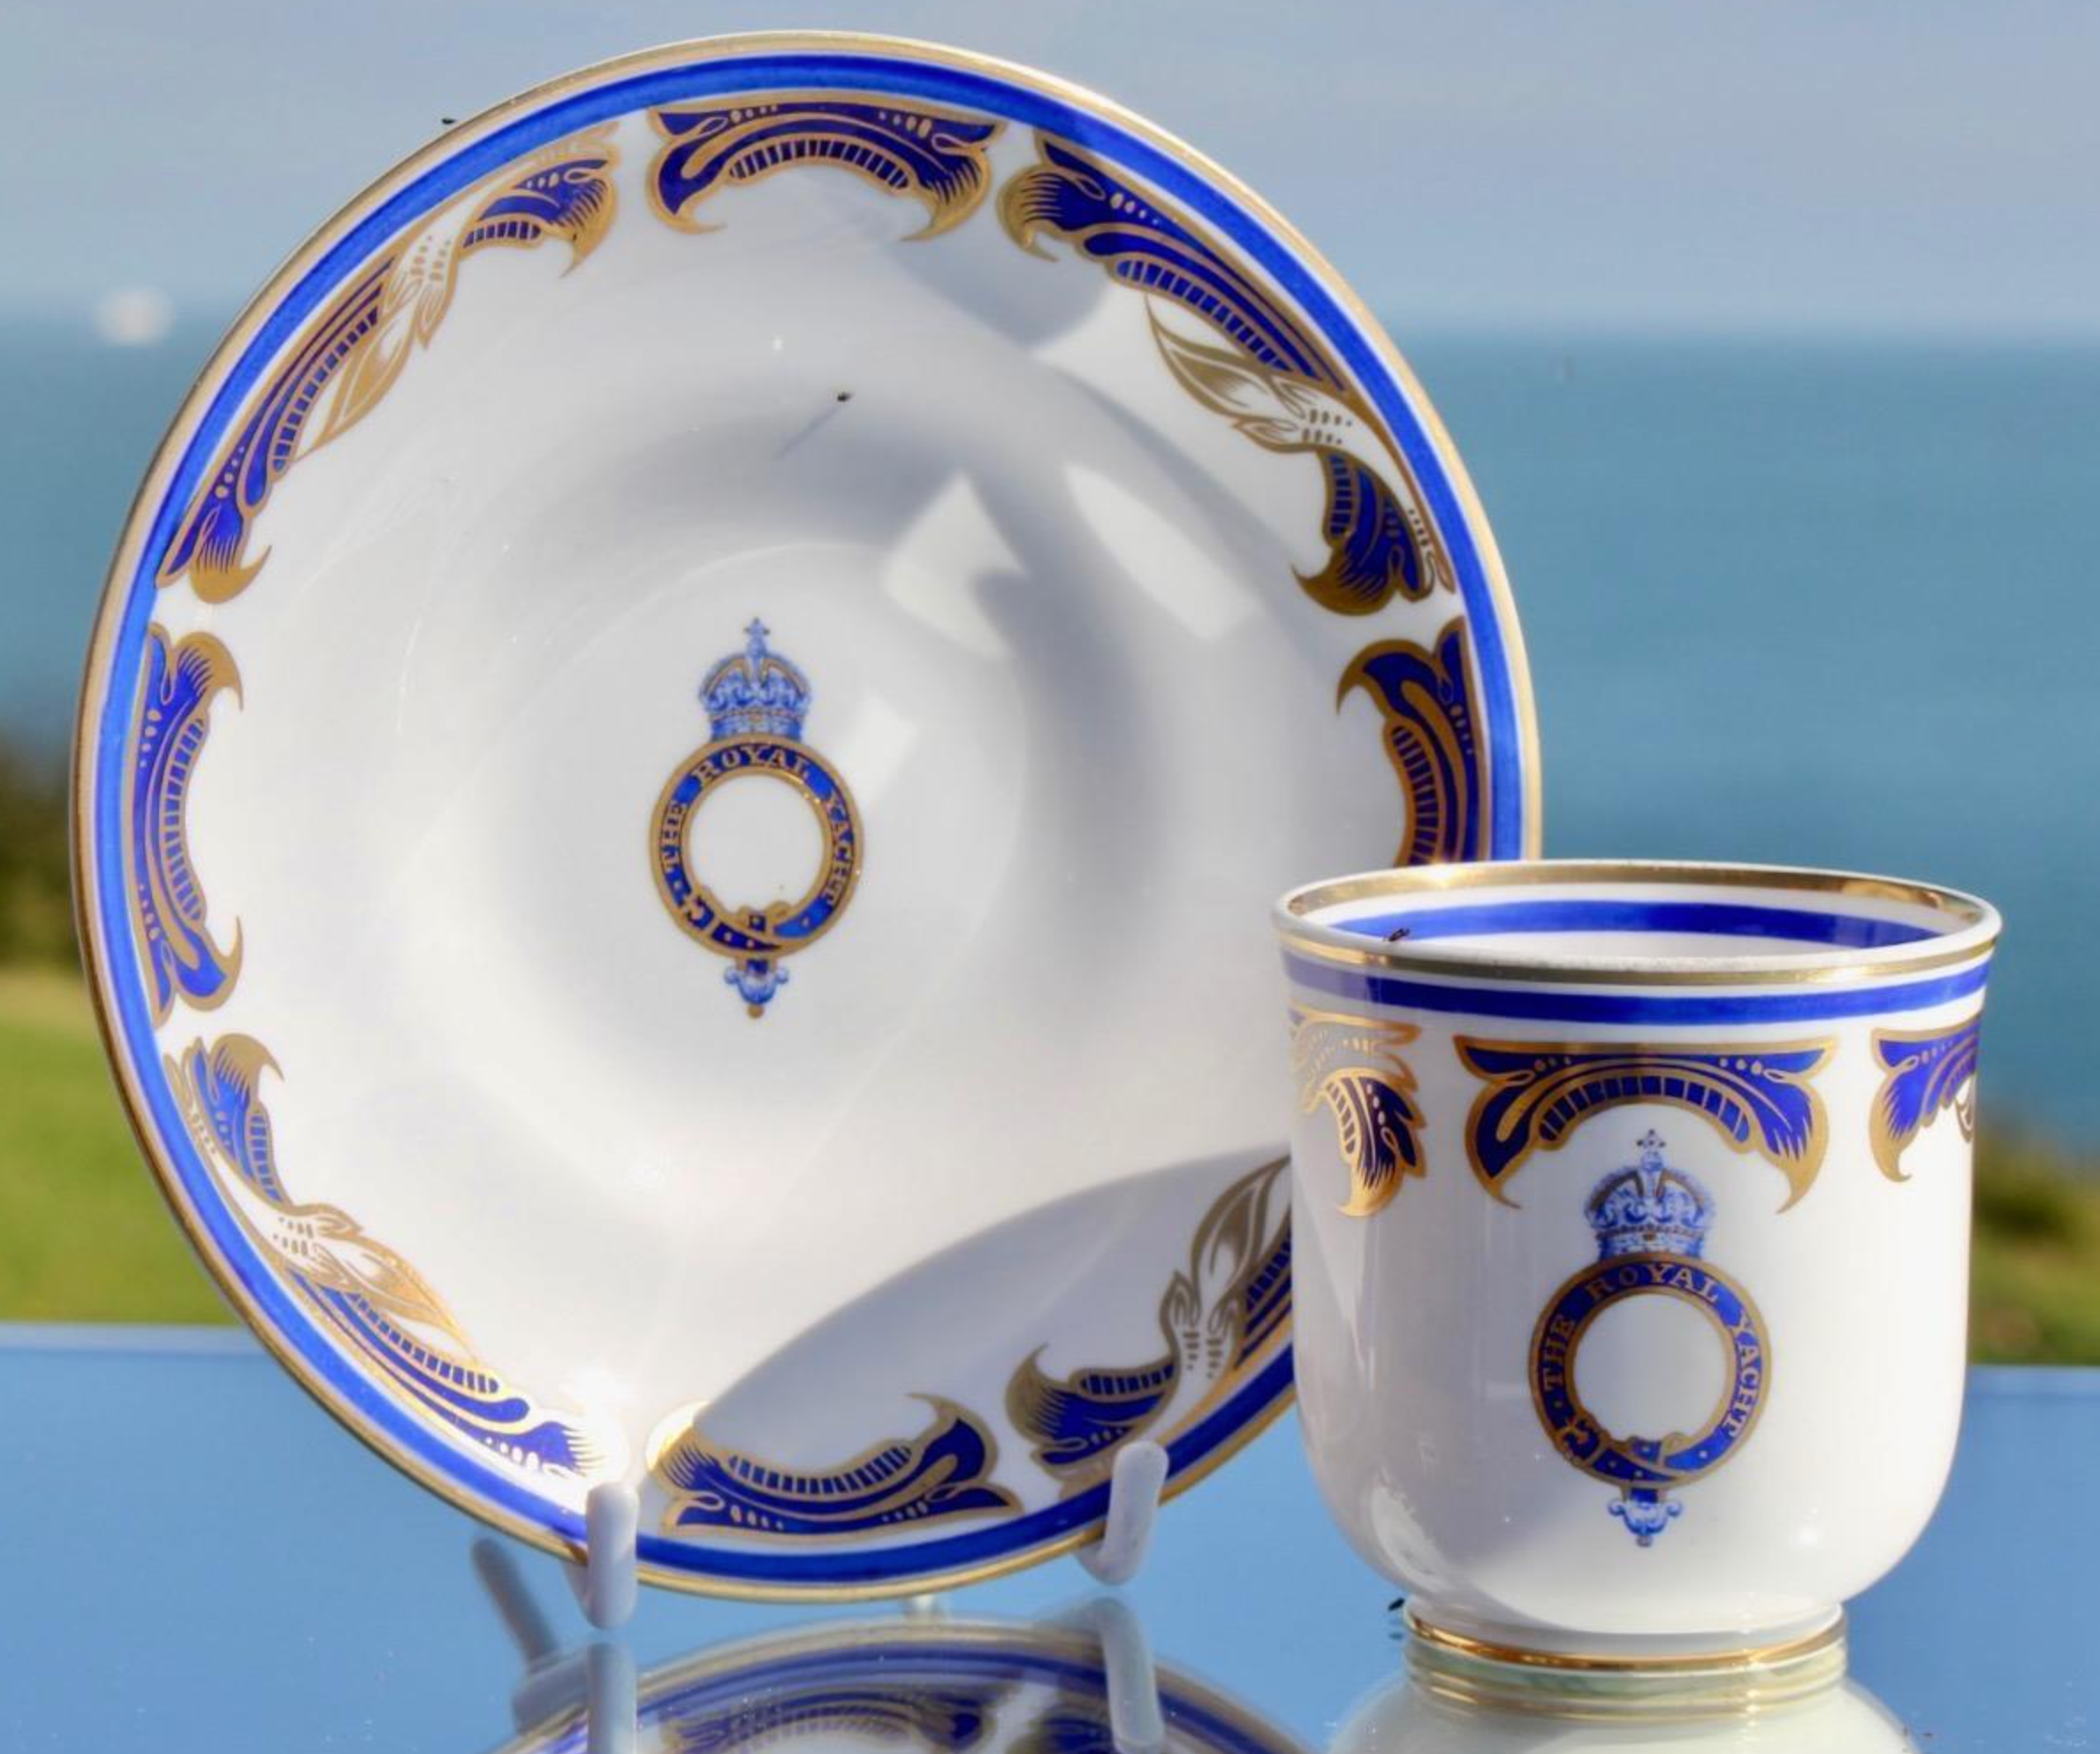 Royal Yacht HMY Victoria & Albert III King George V Copelands Spode cup & saucer